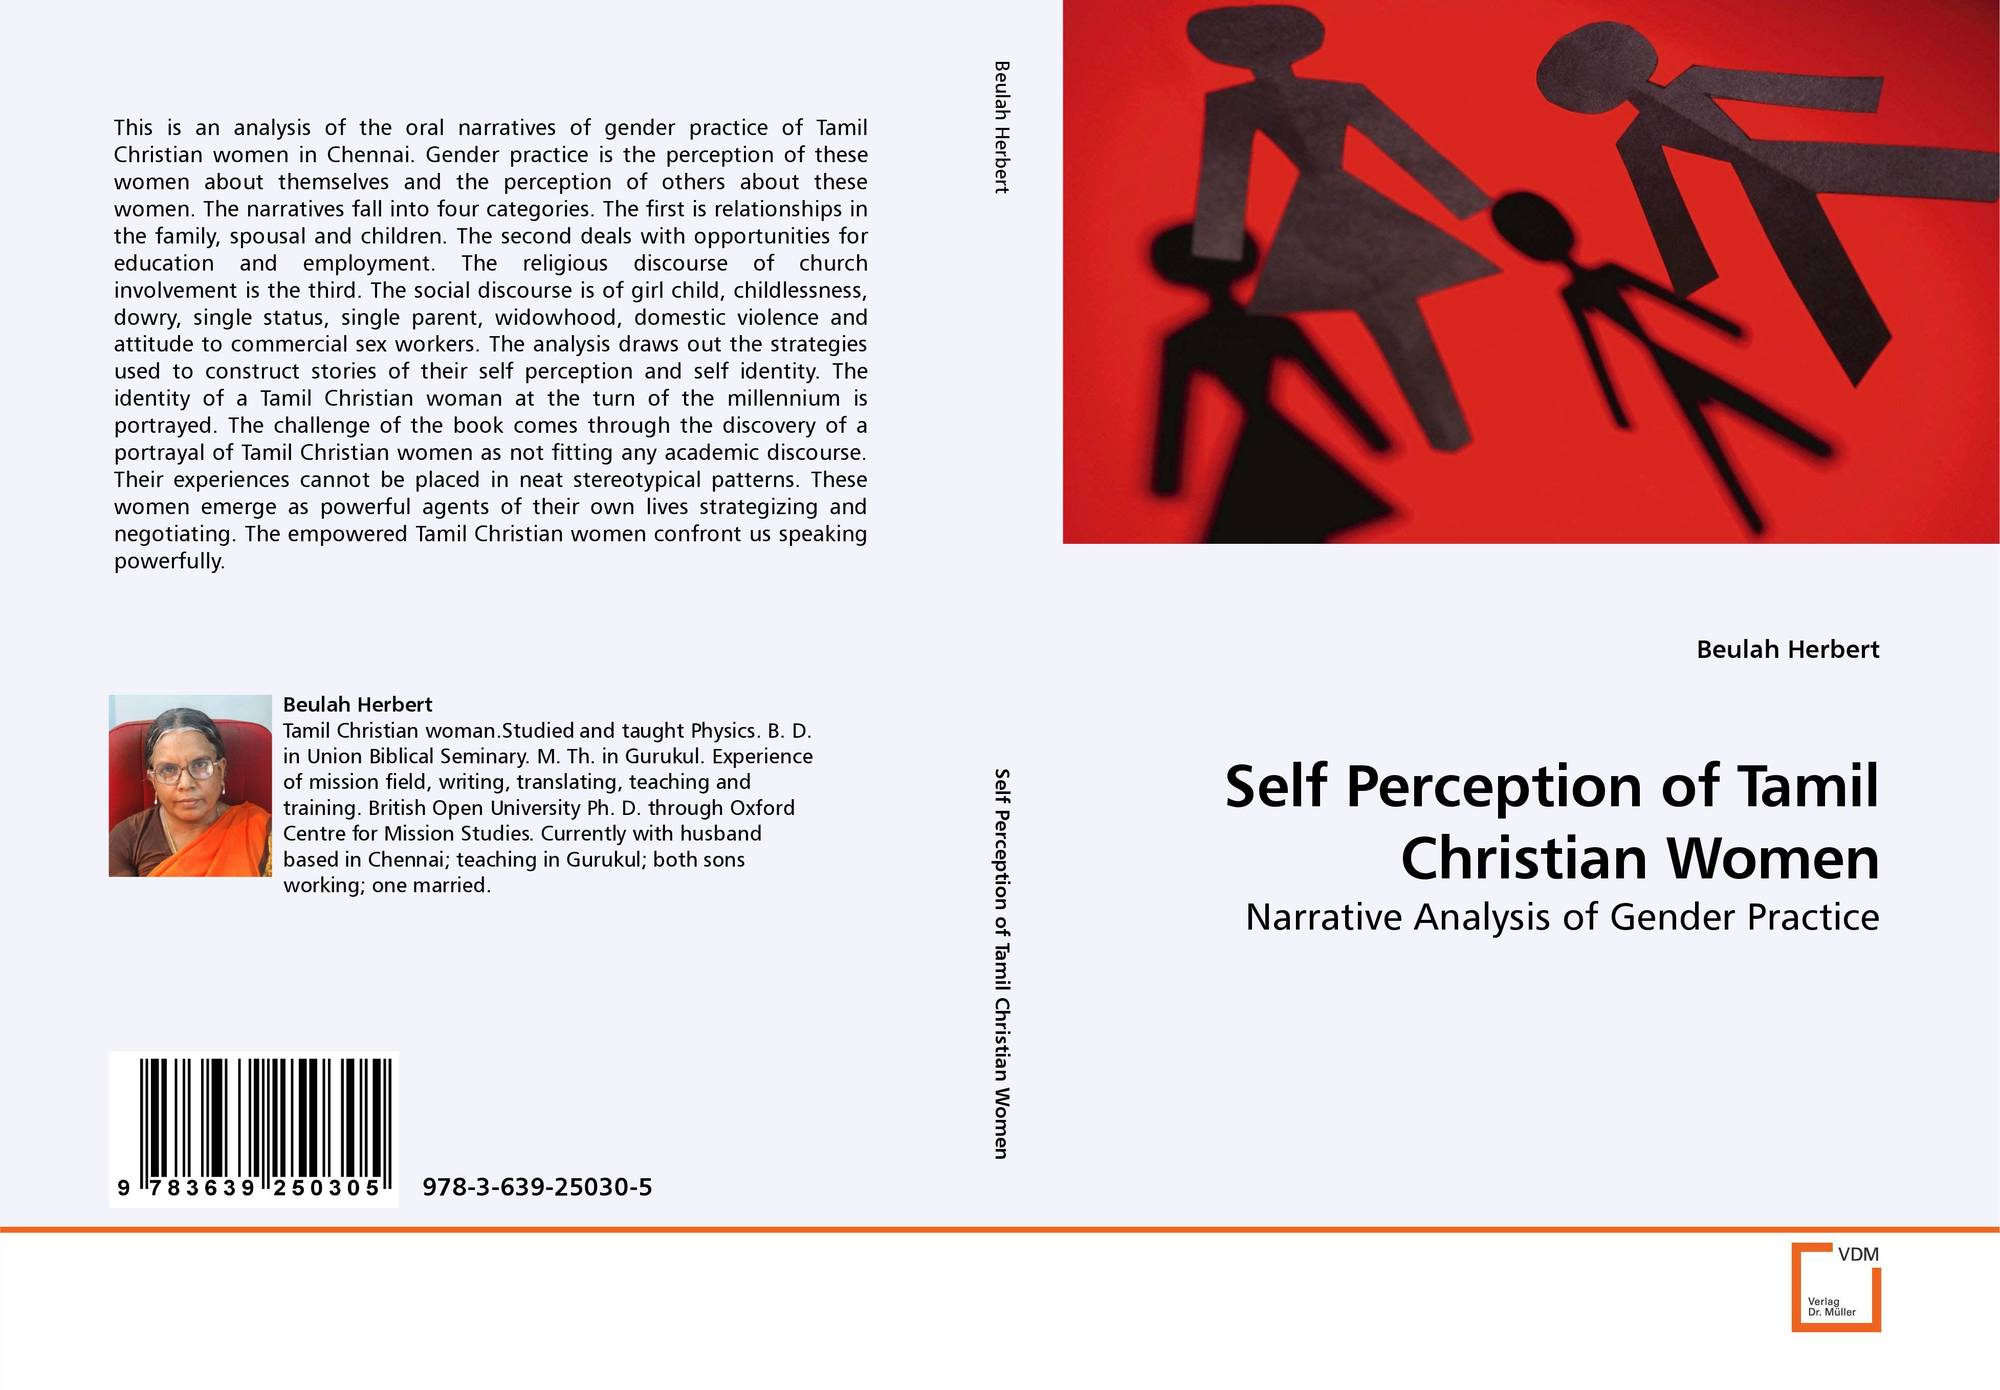 an analysis of societys perception on women He condemned the law society of kenya for perceived criticisms of the  to  critically analyze what makes women silent and the implications of women's  silence.